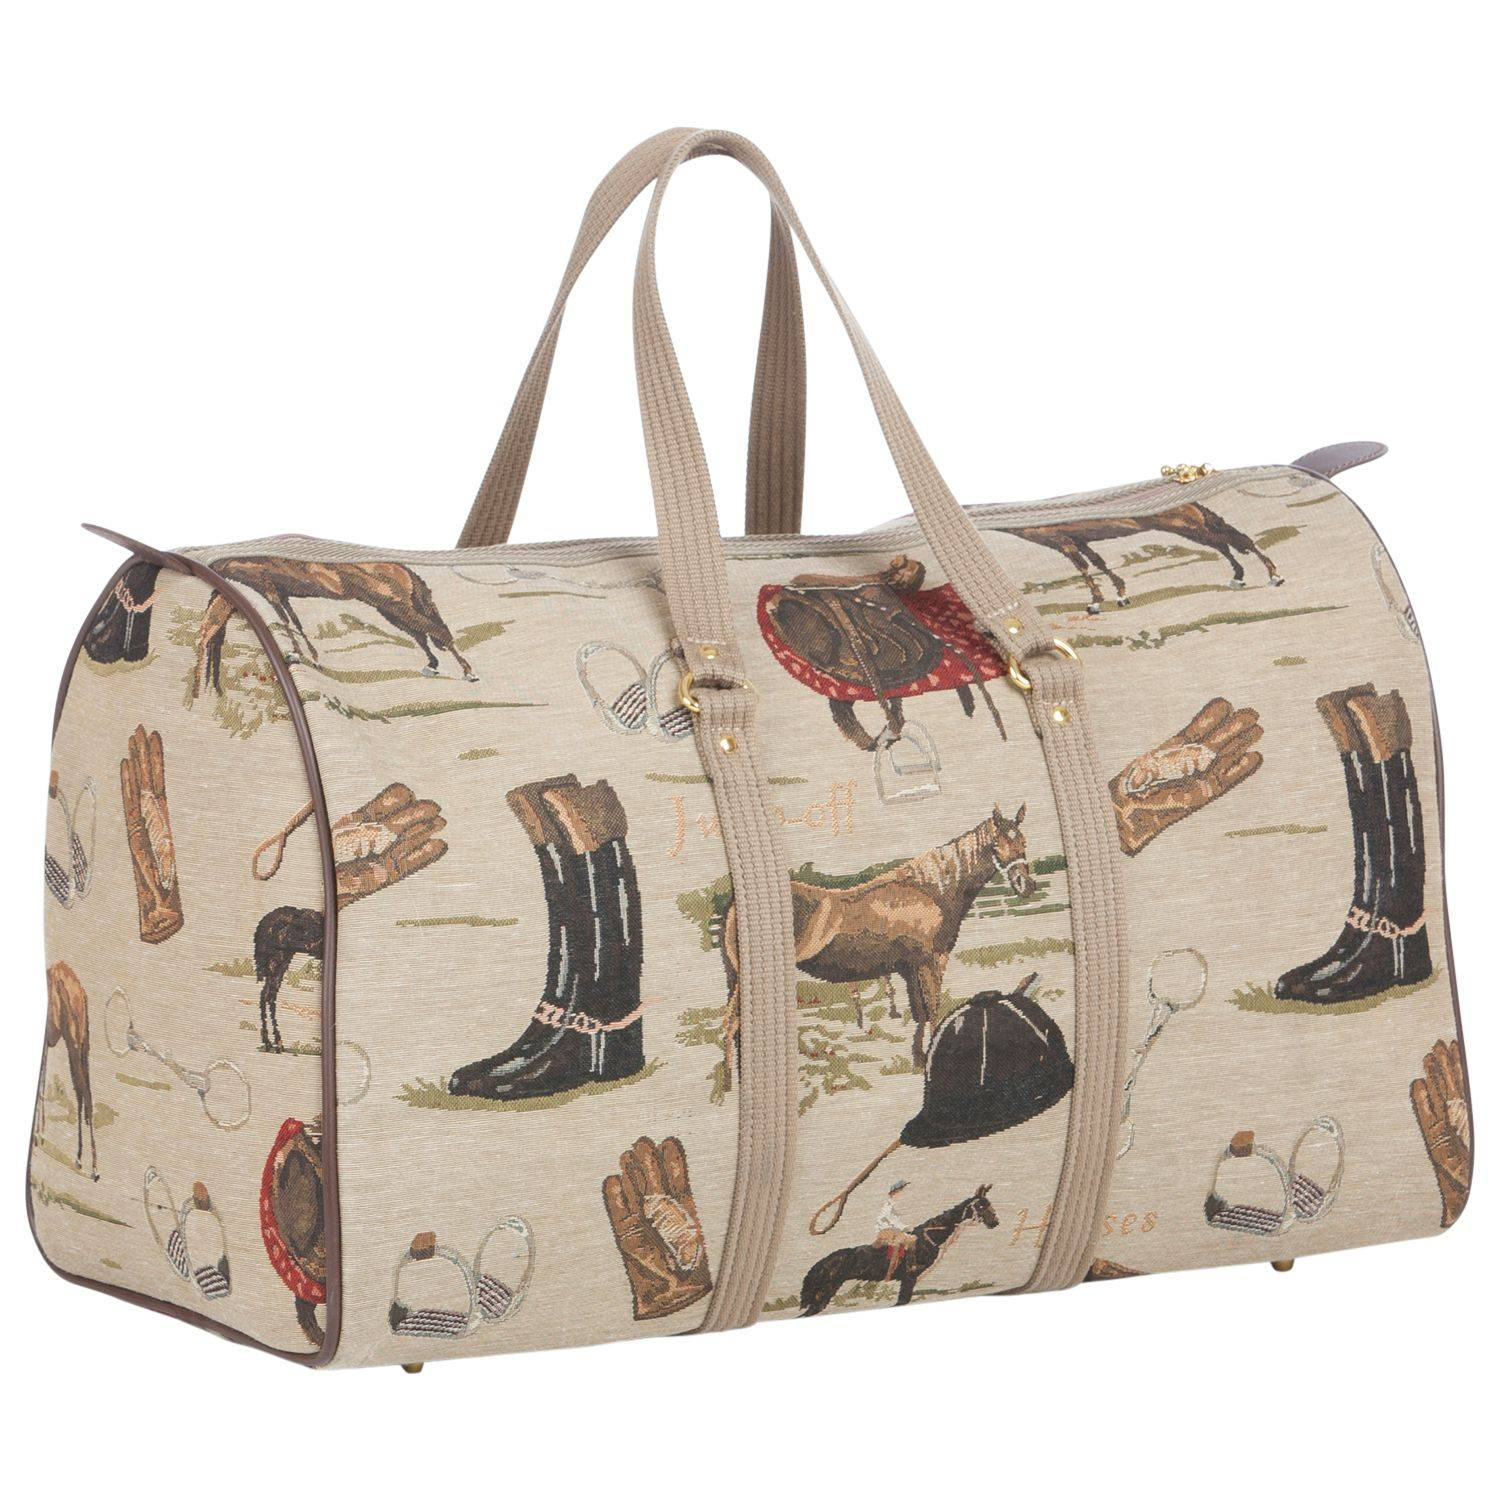 Huntley Equestrian Tapestry Bag